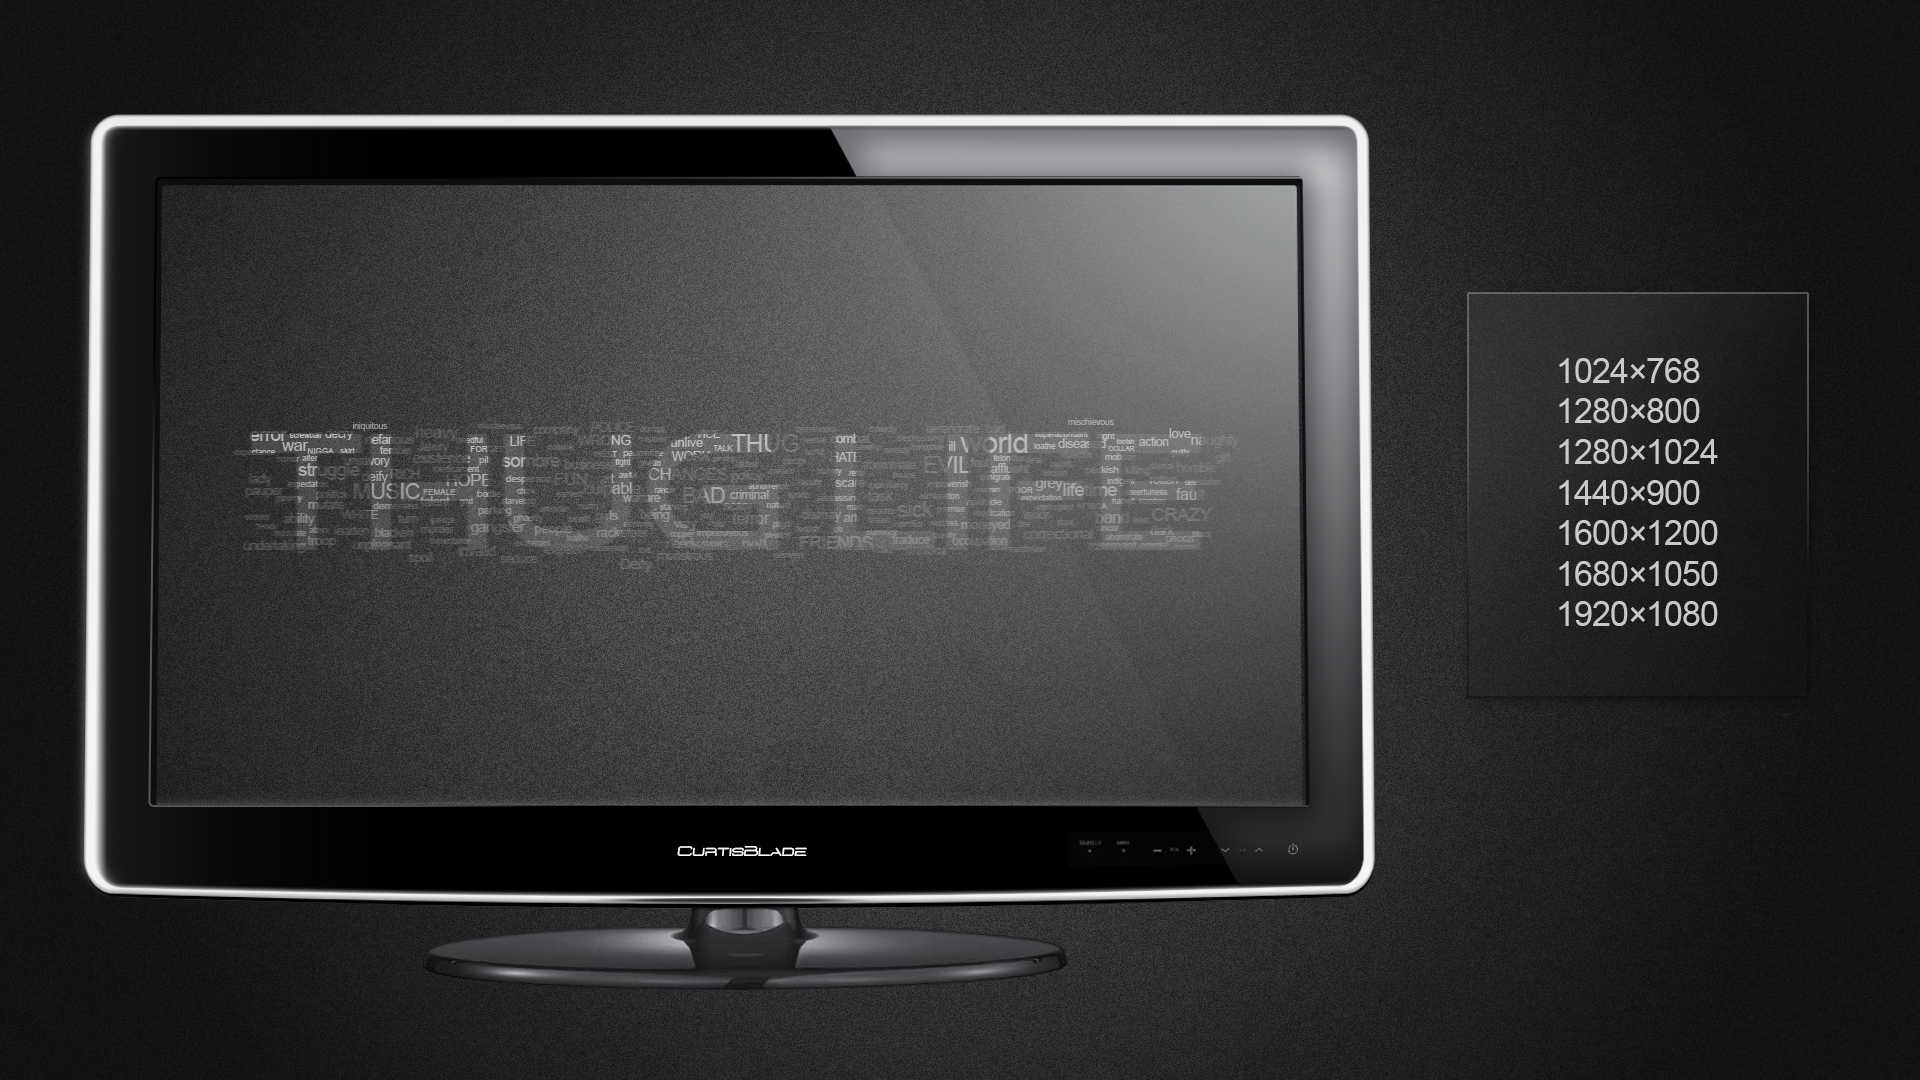 Thug life wallpaper by curtisblade on deviantart - Thug life wallpaper ...